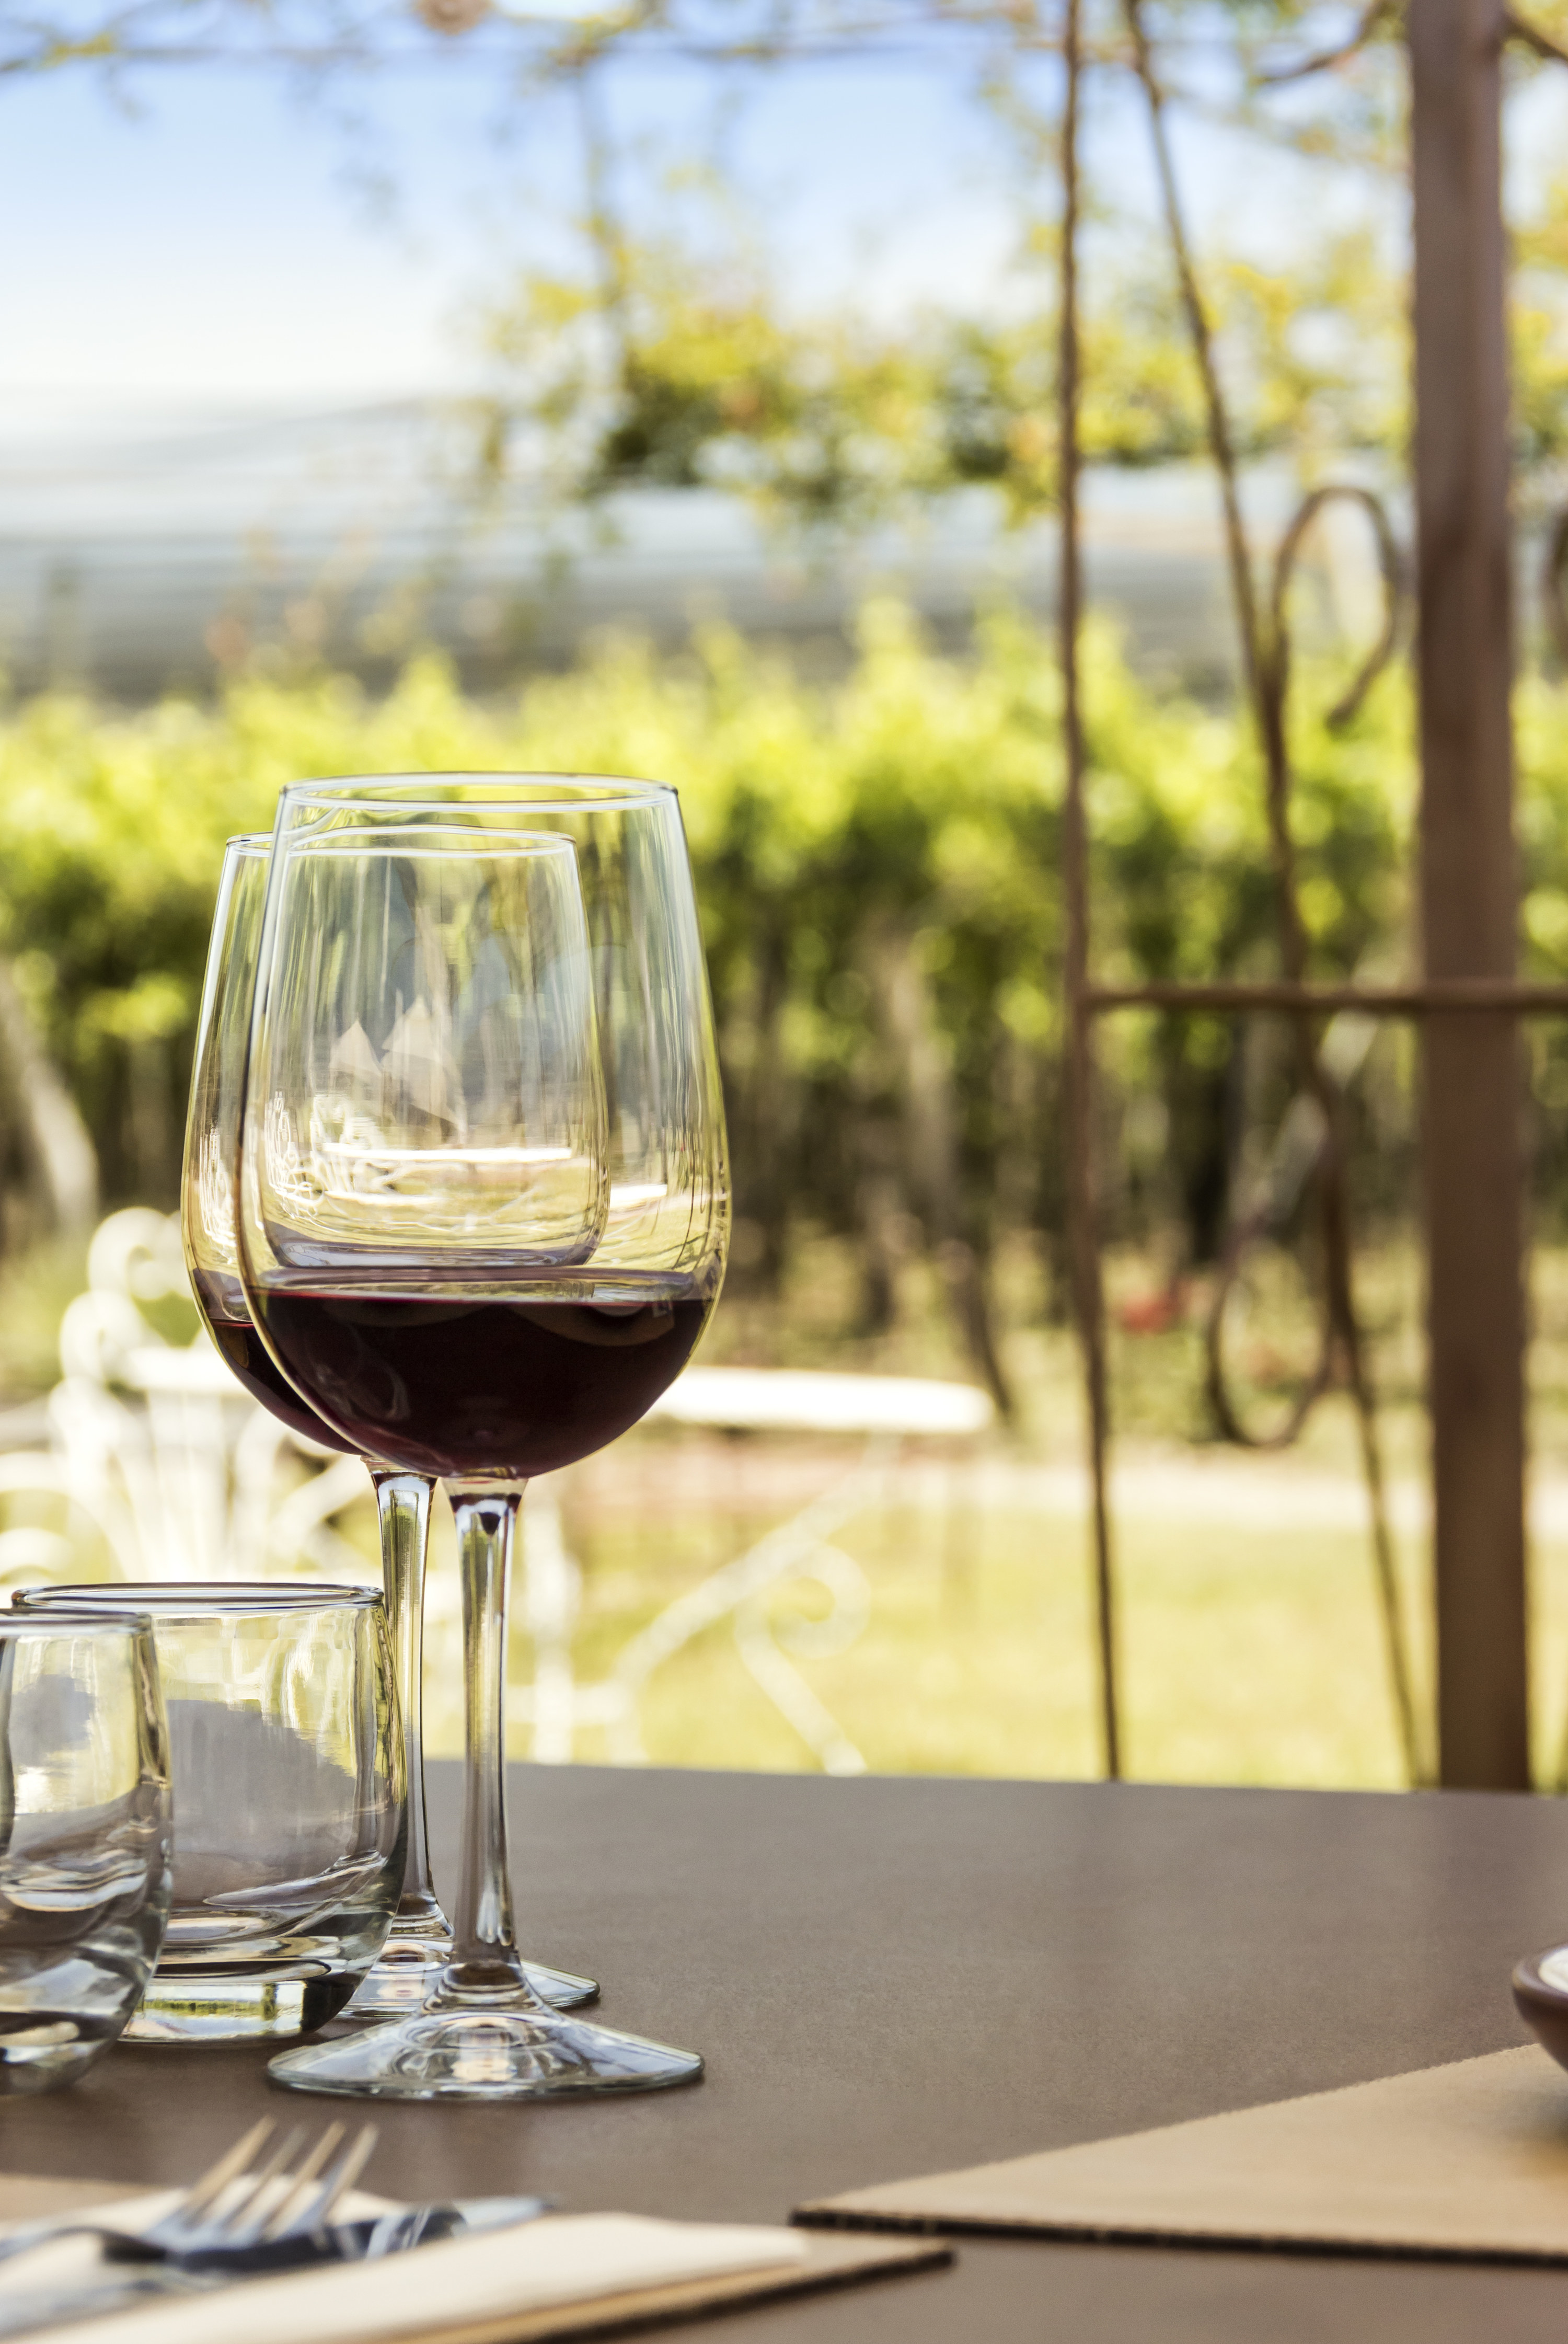 Red wine in front of vineyards